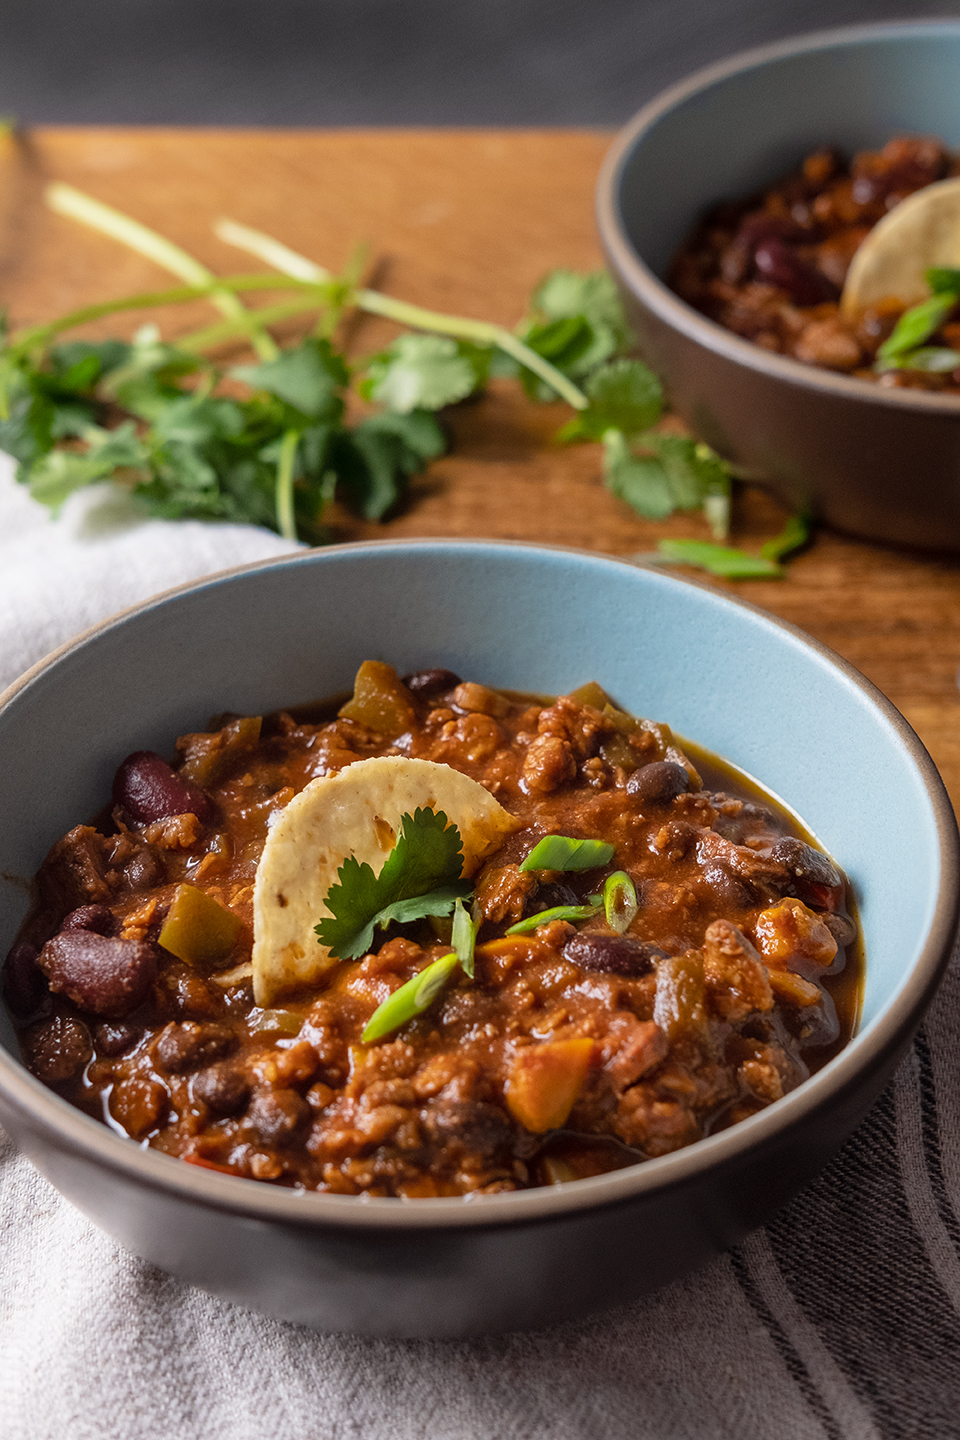 Brilliant_Pixel_Imaging_Food_Photography_Jodiloves_Chili4.jpg